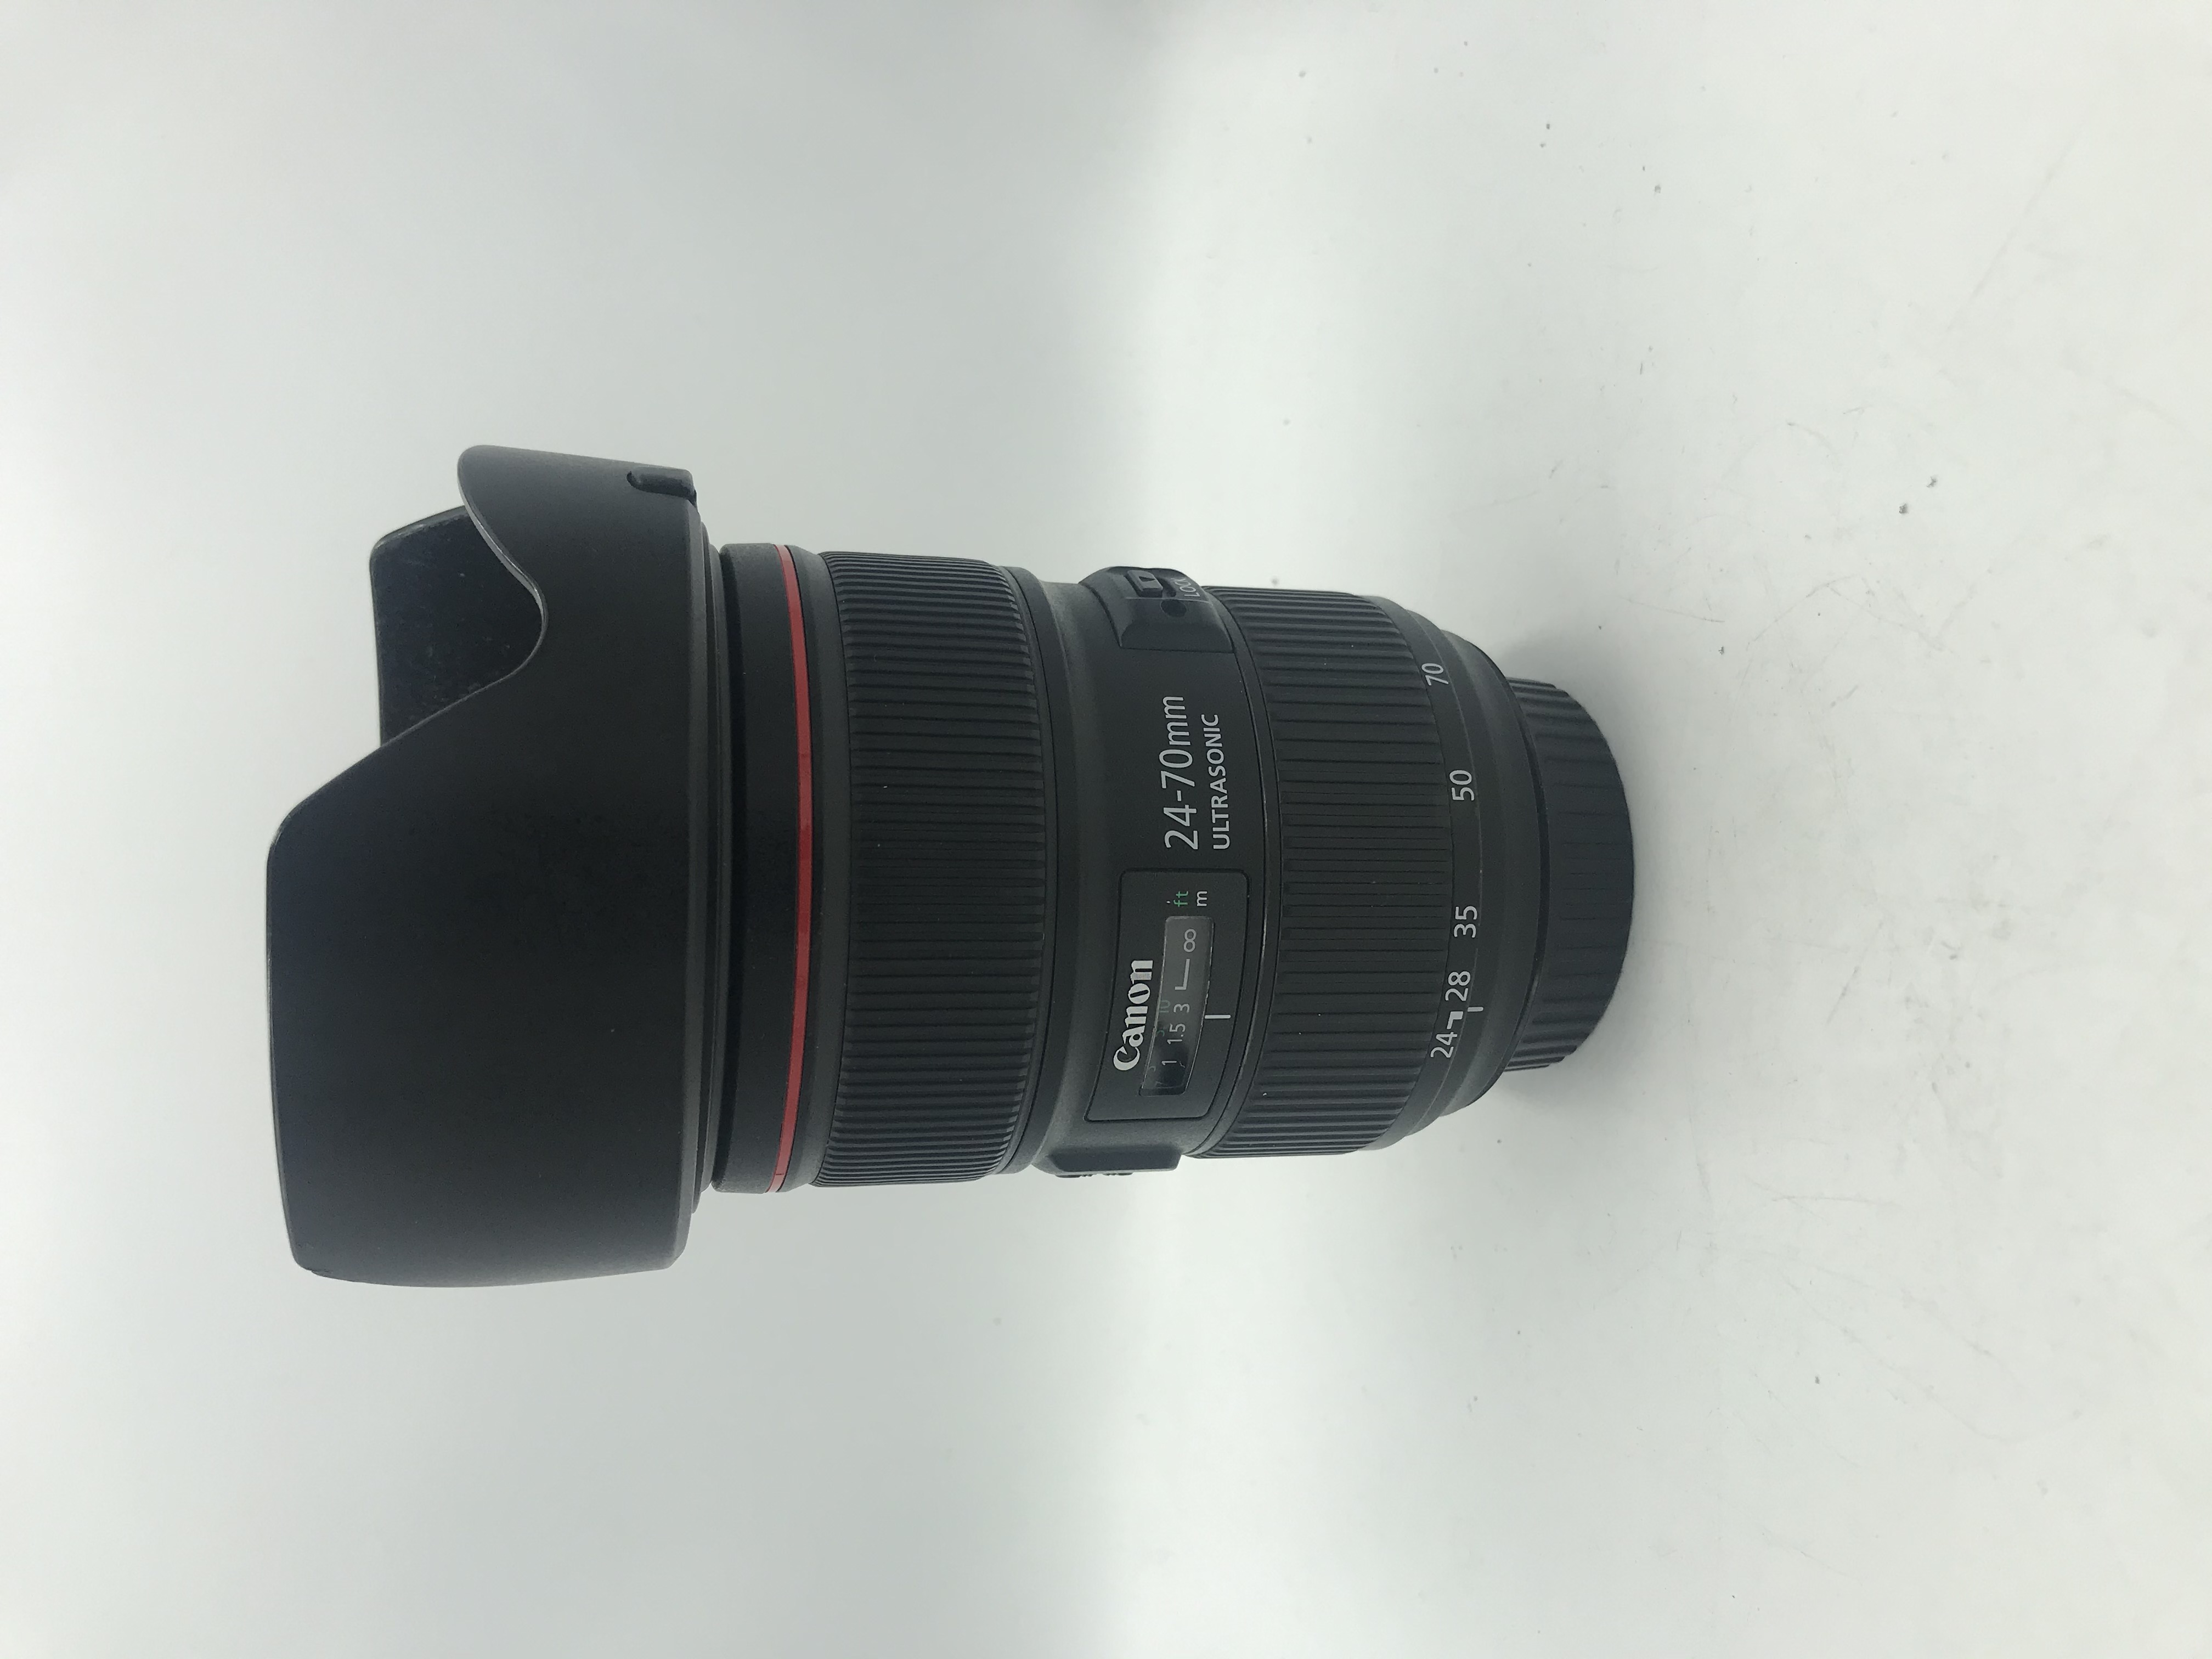 Used Canon 24-70mm 2.8 L II EF USM Zoom Lens